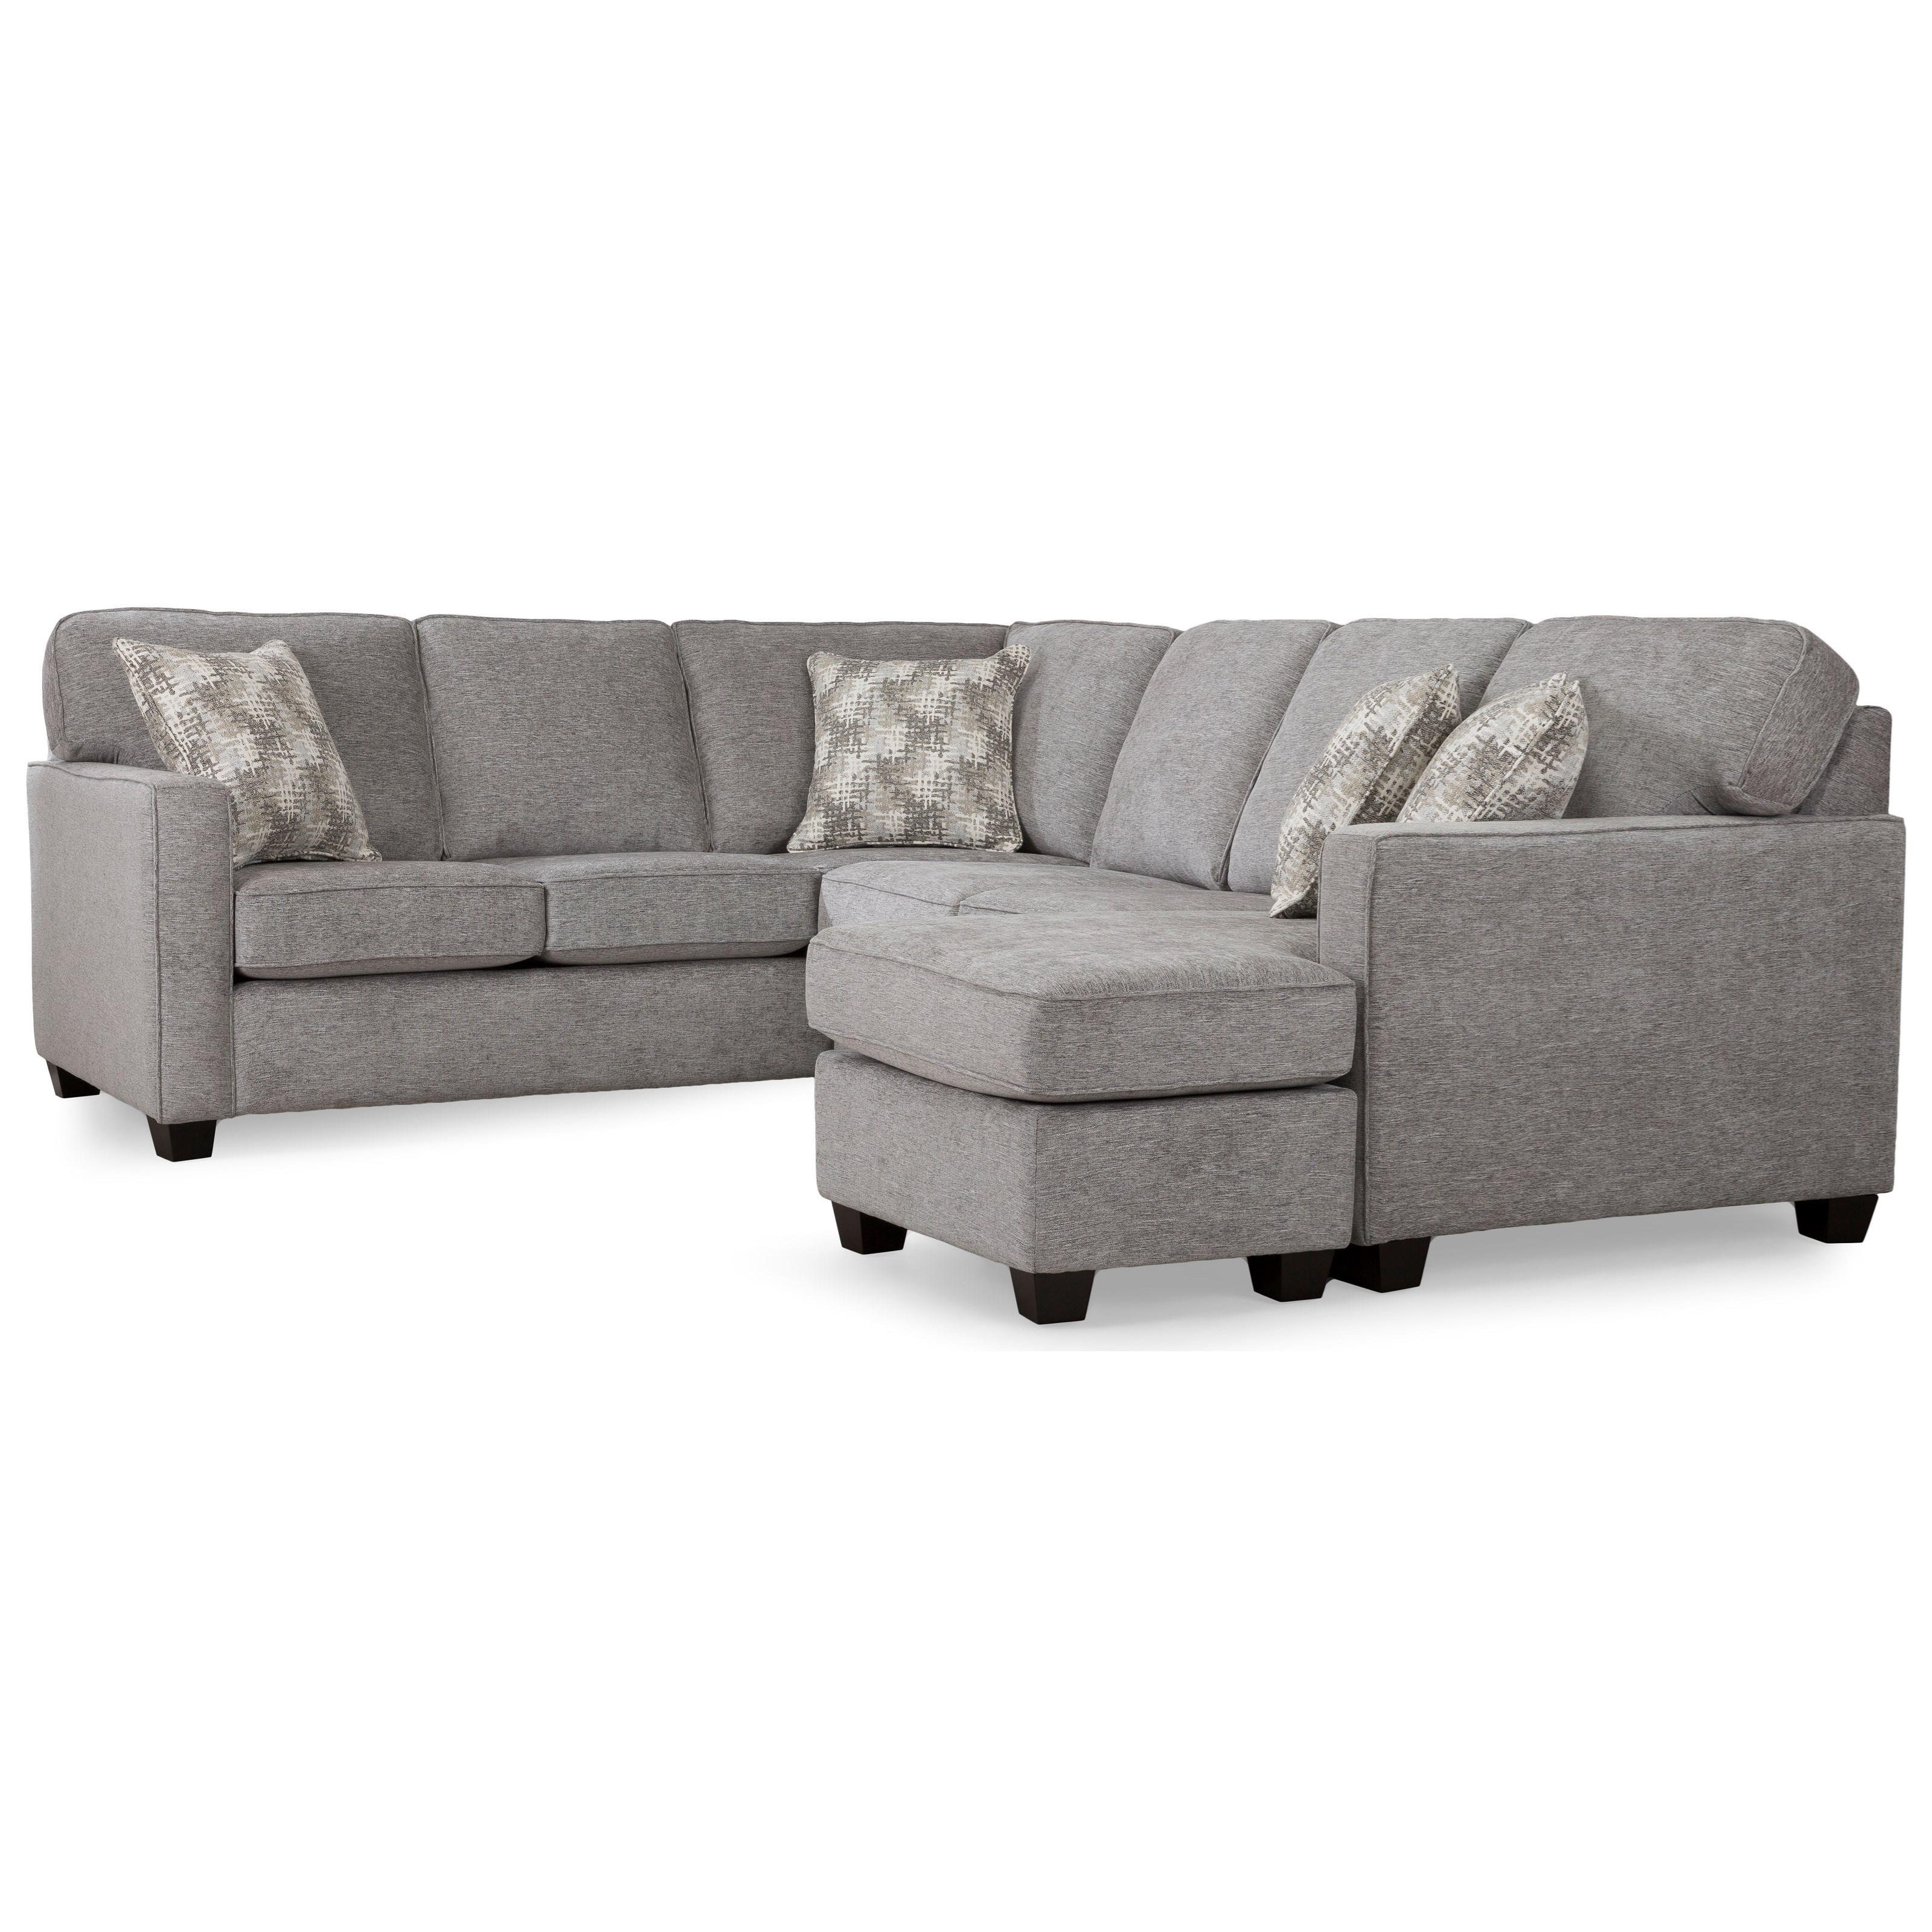 2541 Sectional Sofa by Decor-Rest at Johnny Janosik